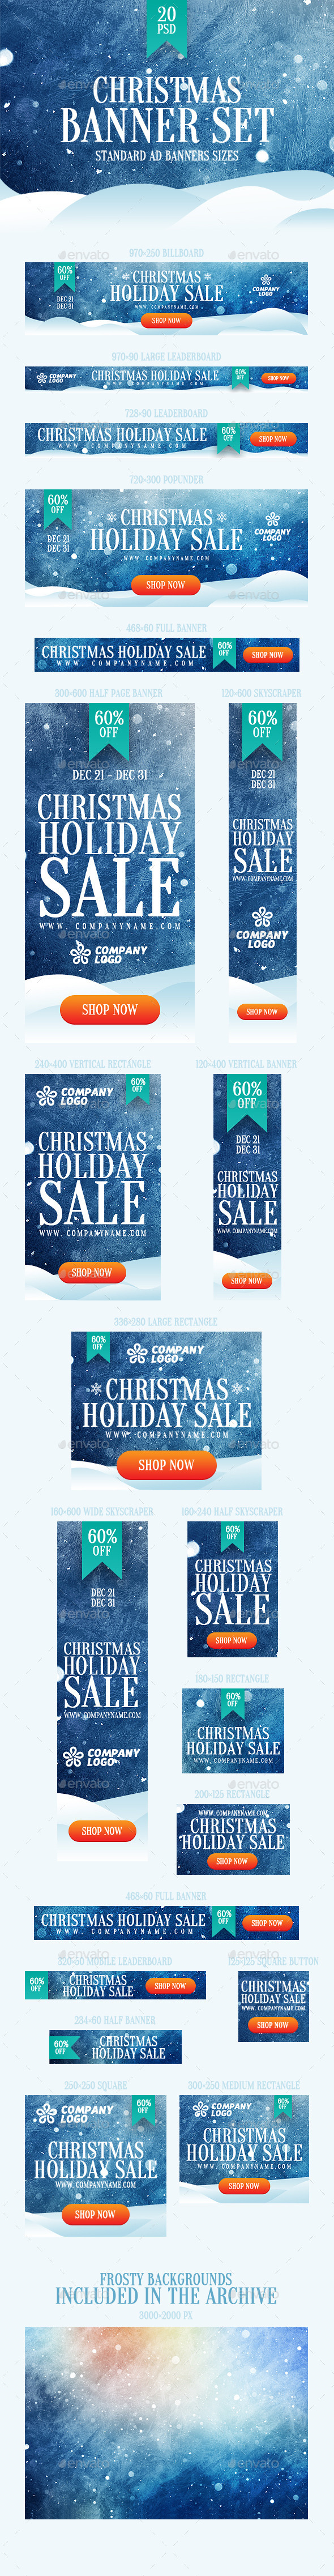 GraphicRiver Christmas Banner Set 9825802